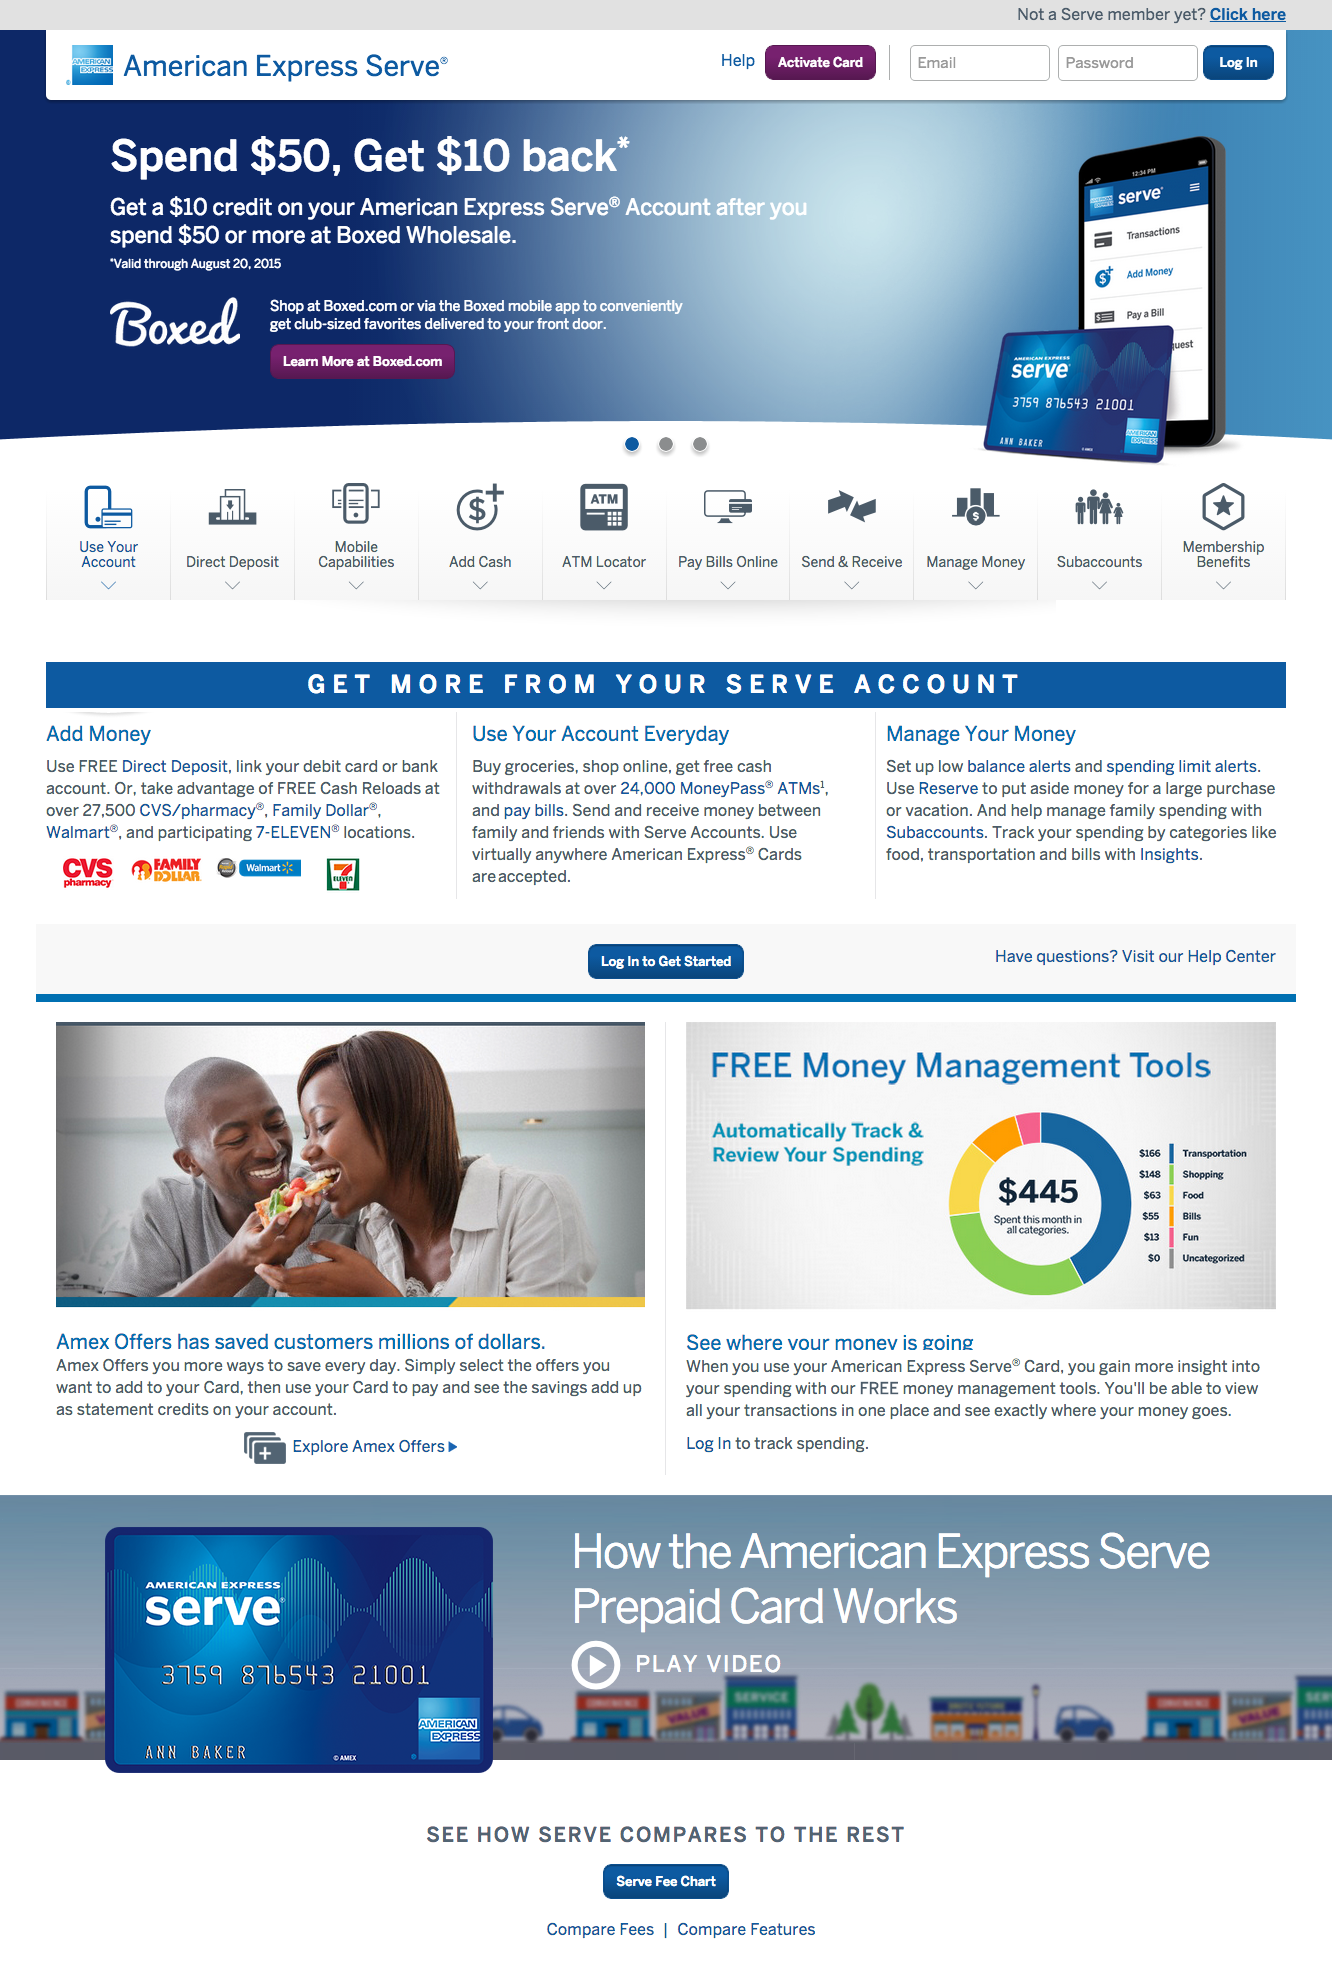 Top 72 Complaints And Reviews About American Express Serve